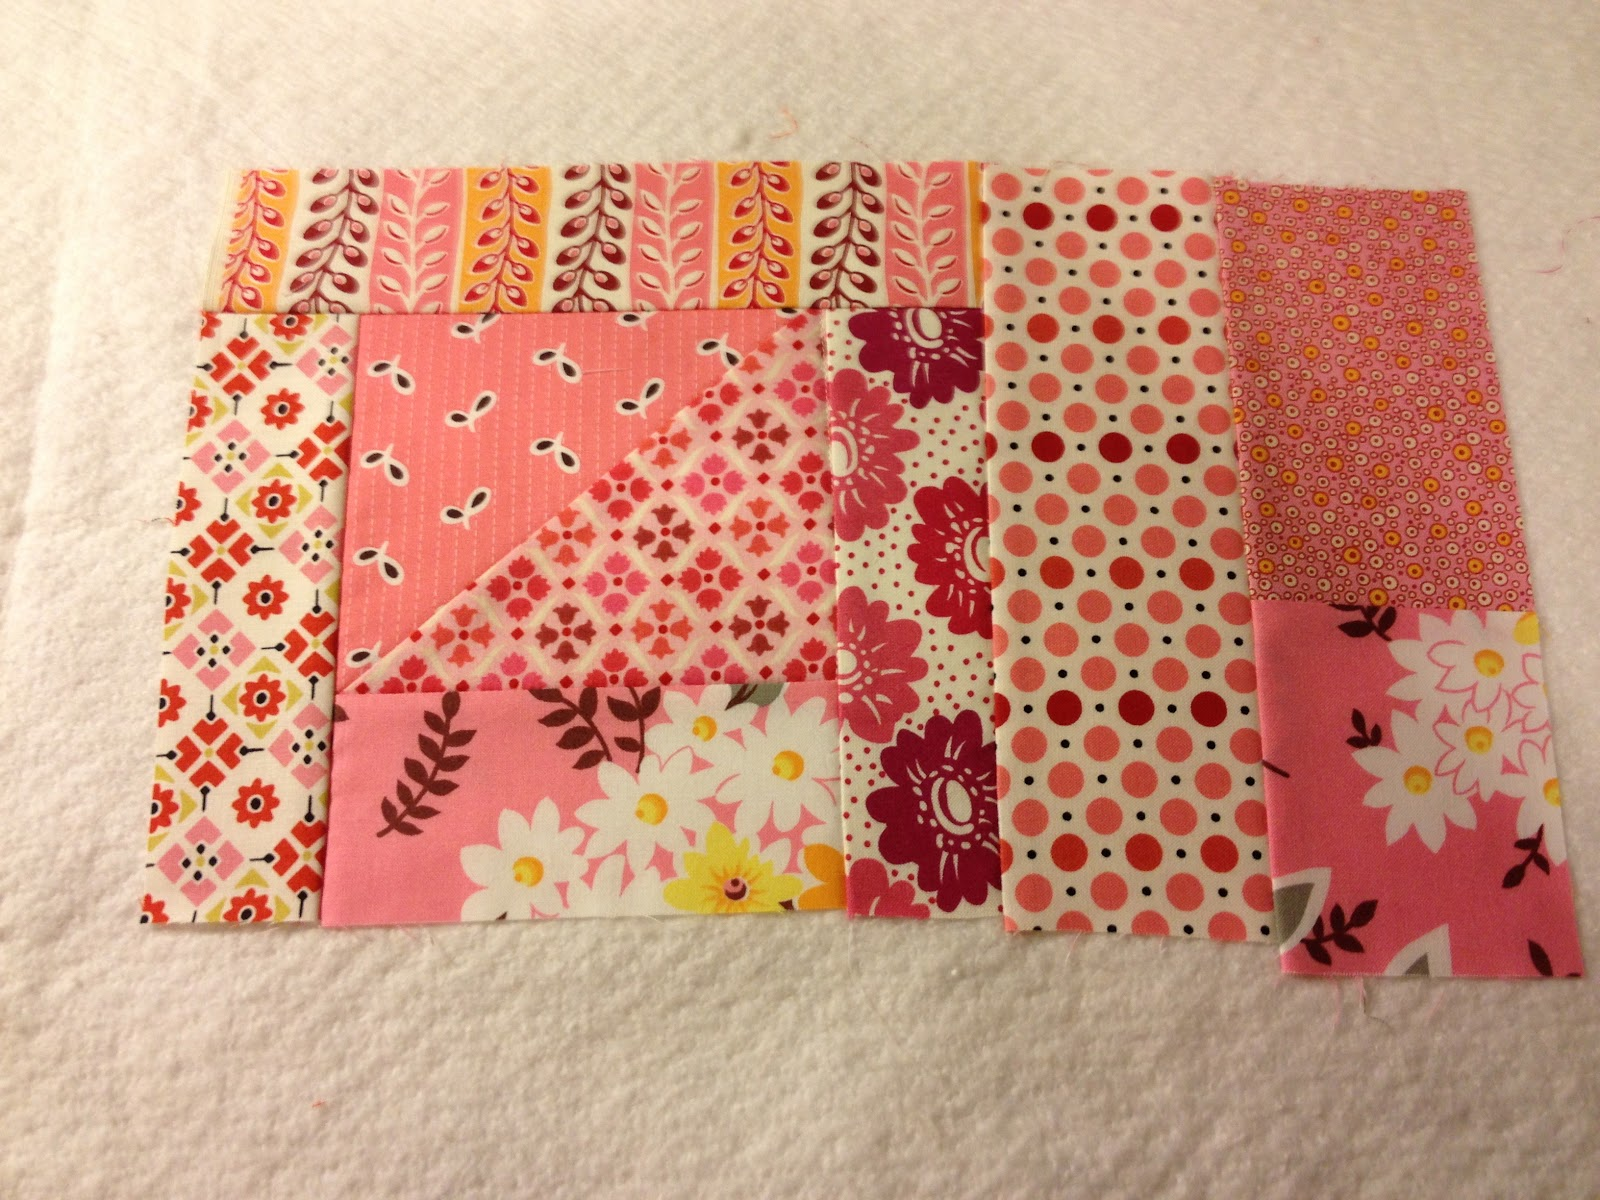 bordeaux bound: Quilted knitting needle holder for my Mom!